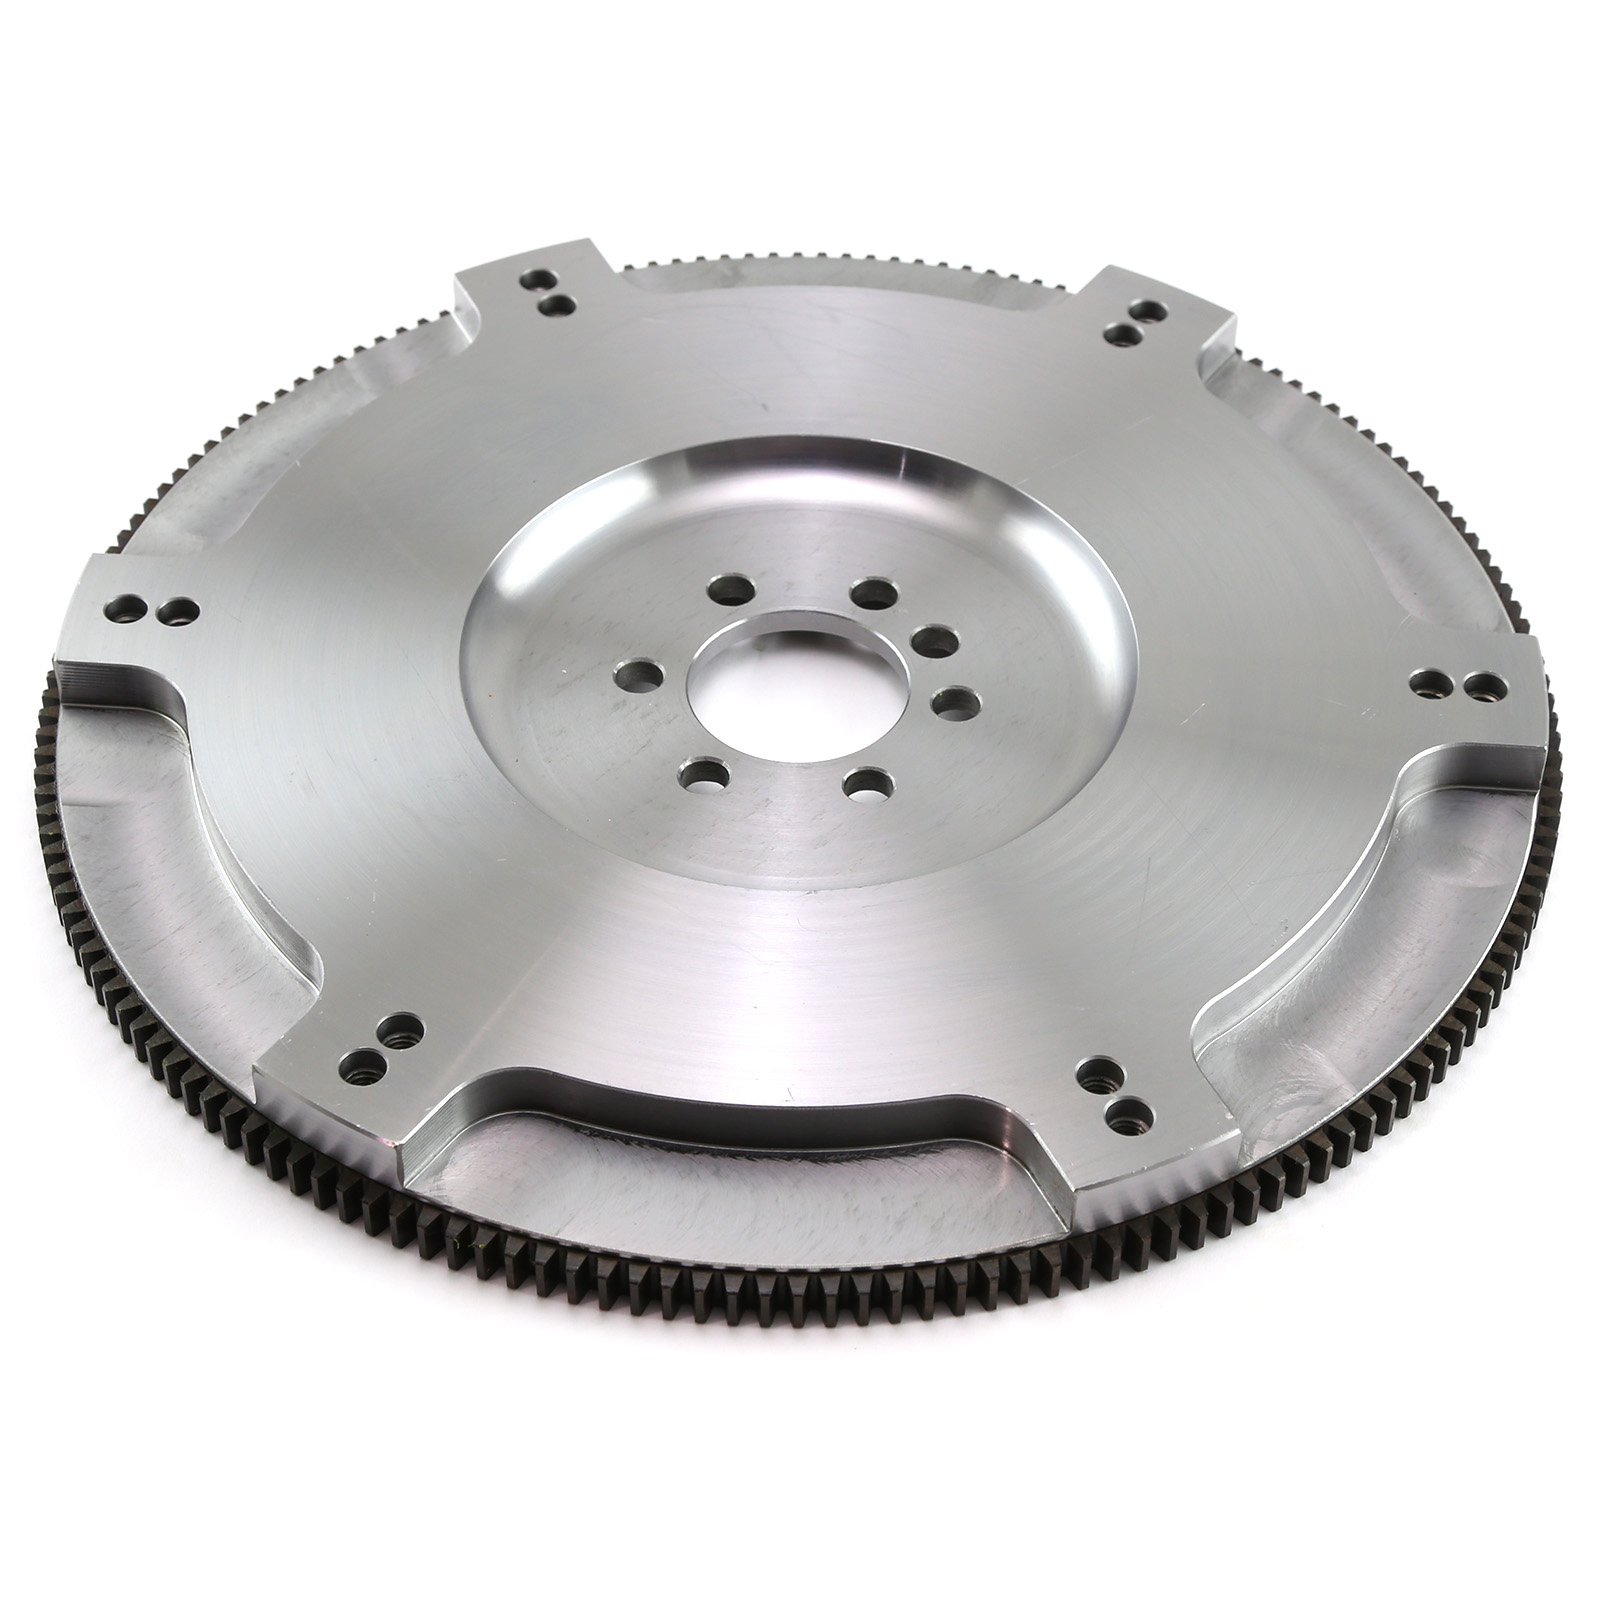 Chevy SBC 350 Late 1Pc Rms 168 Int/Ext Billet Steel Light SFI Flywheel